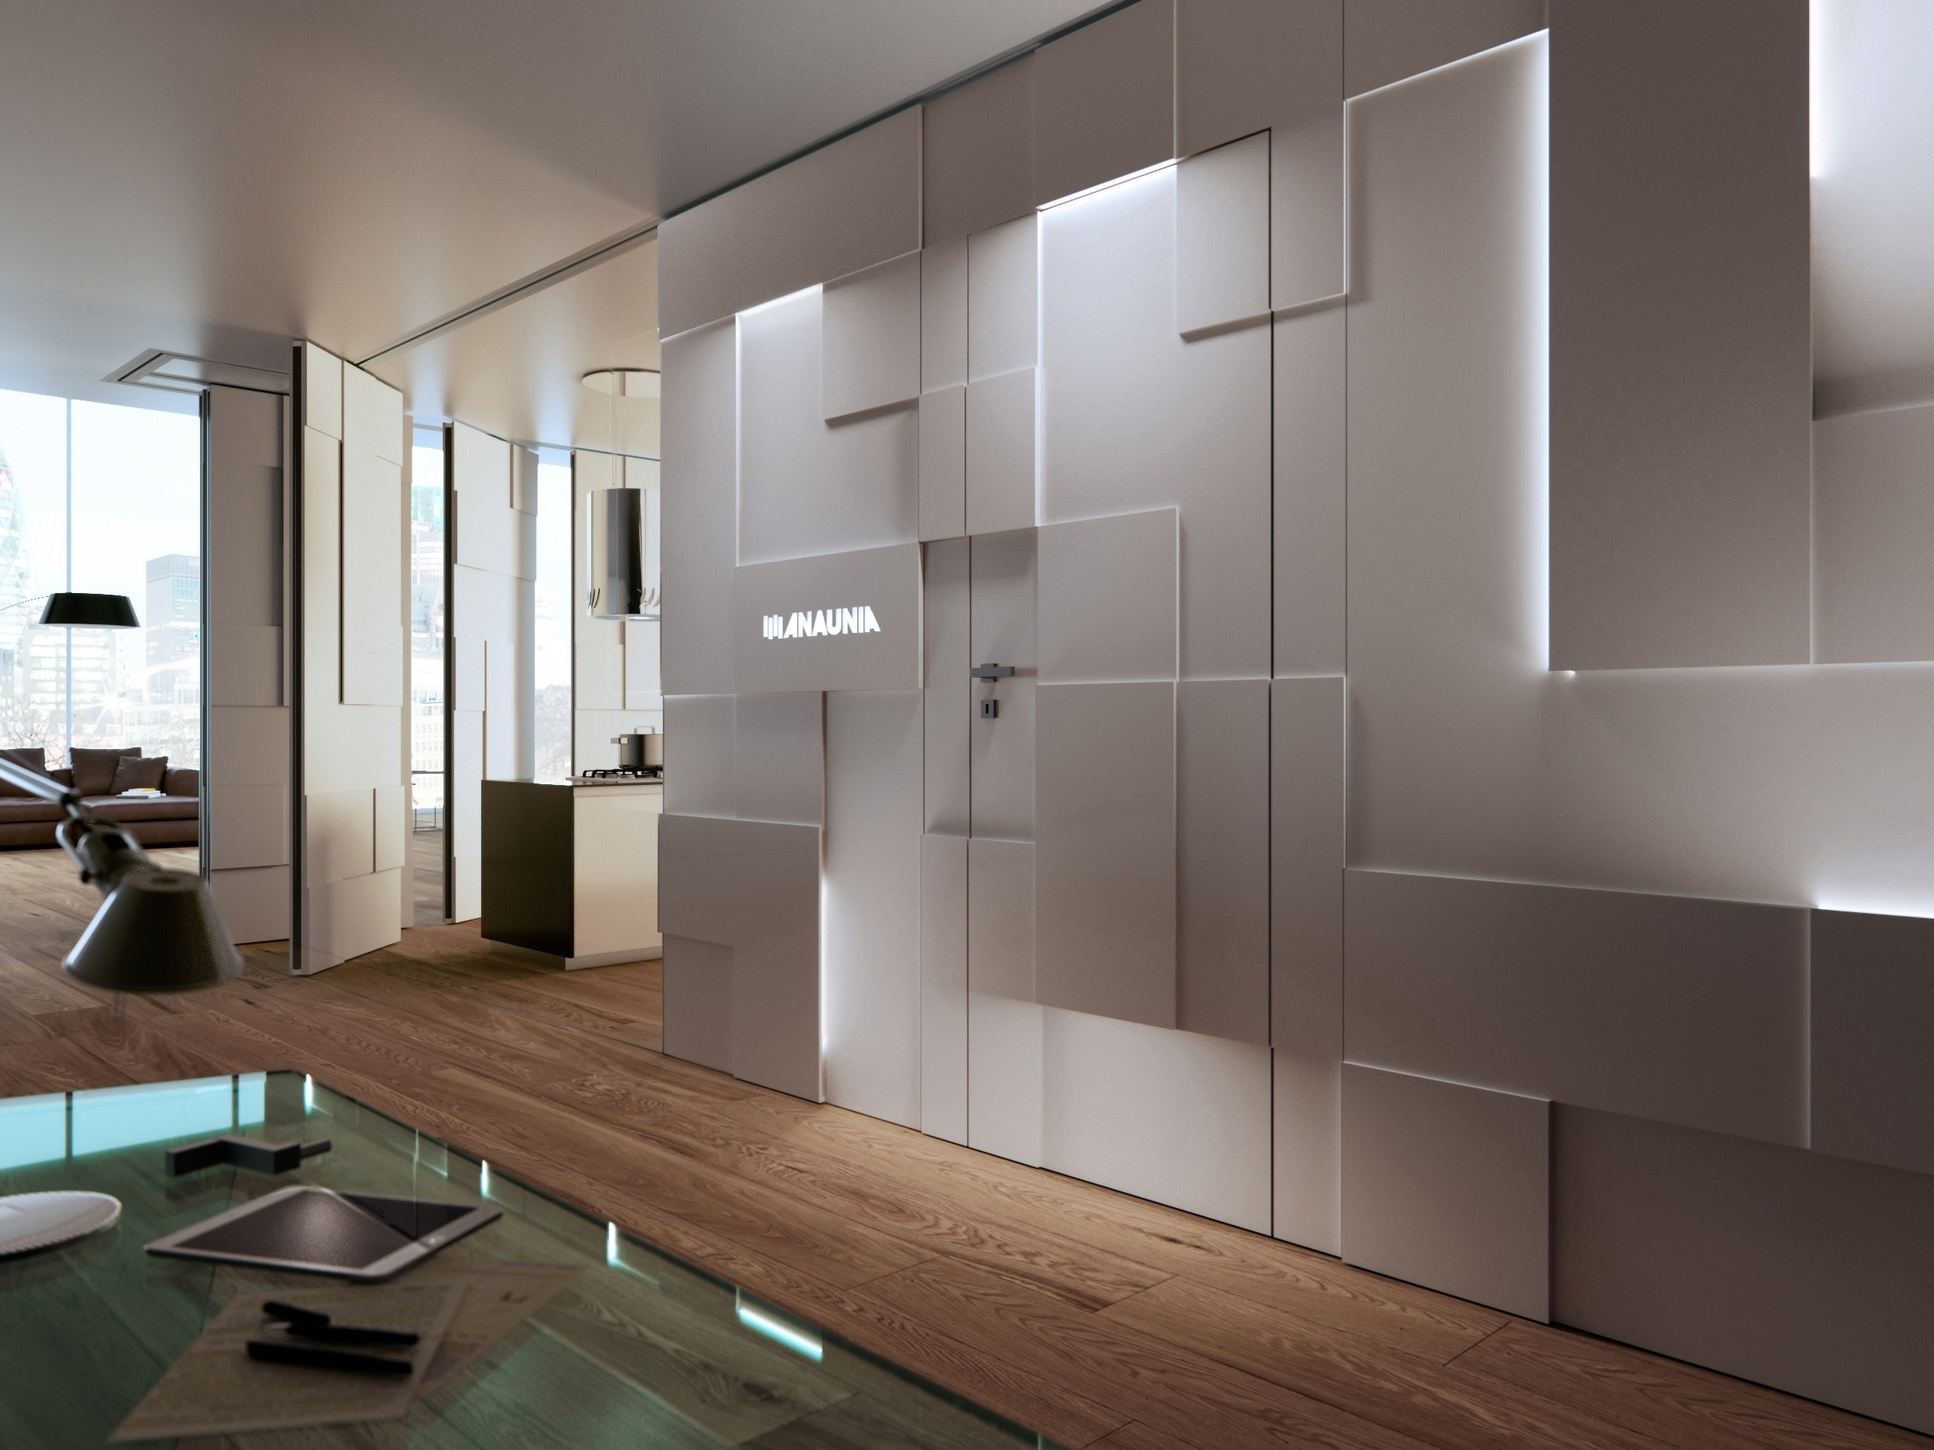 OPERABLE WALL SHINE WALL BY ANAUNIA DESIGN TOMMASO PEZZI